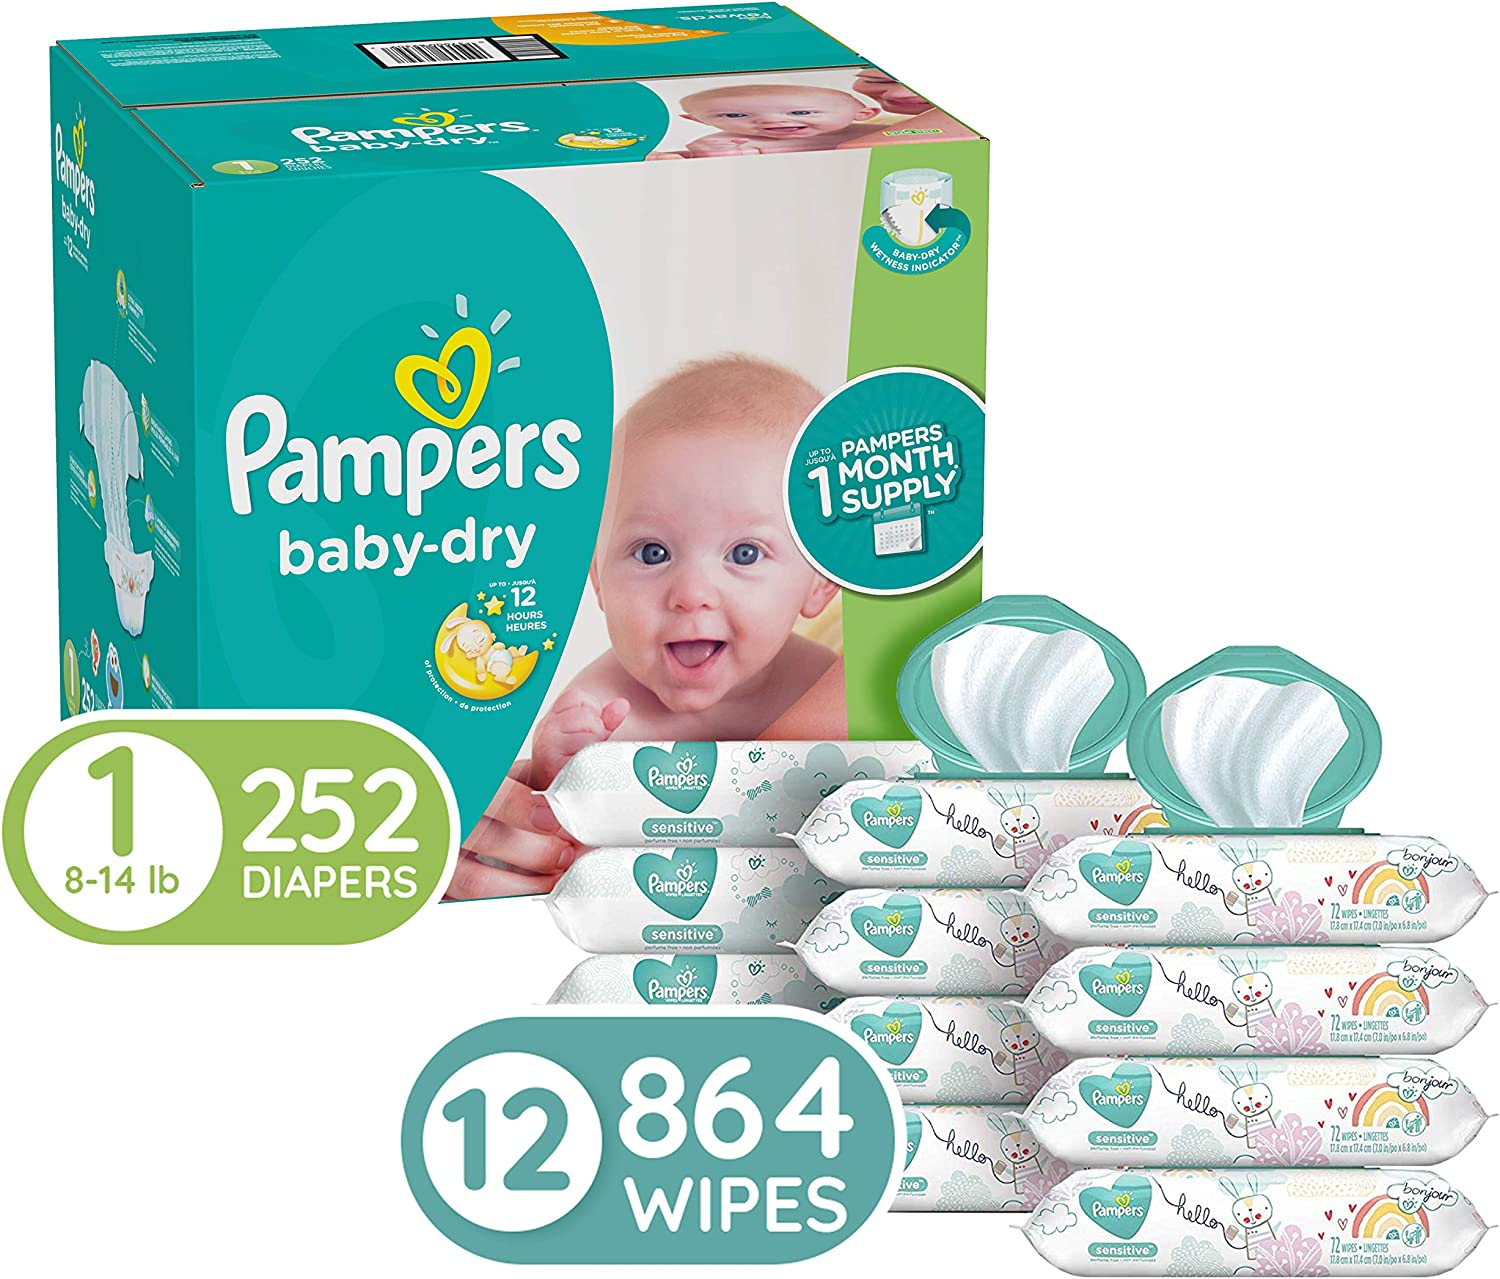 Diapers Newborn/Size 1, 252 Count (8-14 lb) - Pampers Baby Dry Disposable Baby Diapers, ONE Month Supply with Pampers Sensitive Water Baby Wipes, 12X Pop-Top Packs, 864 Count